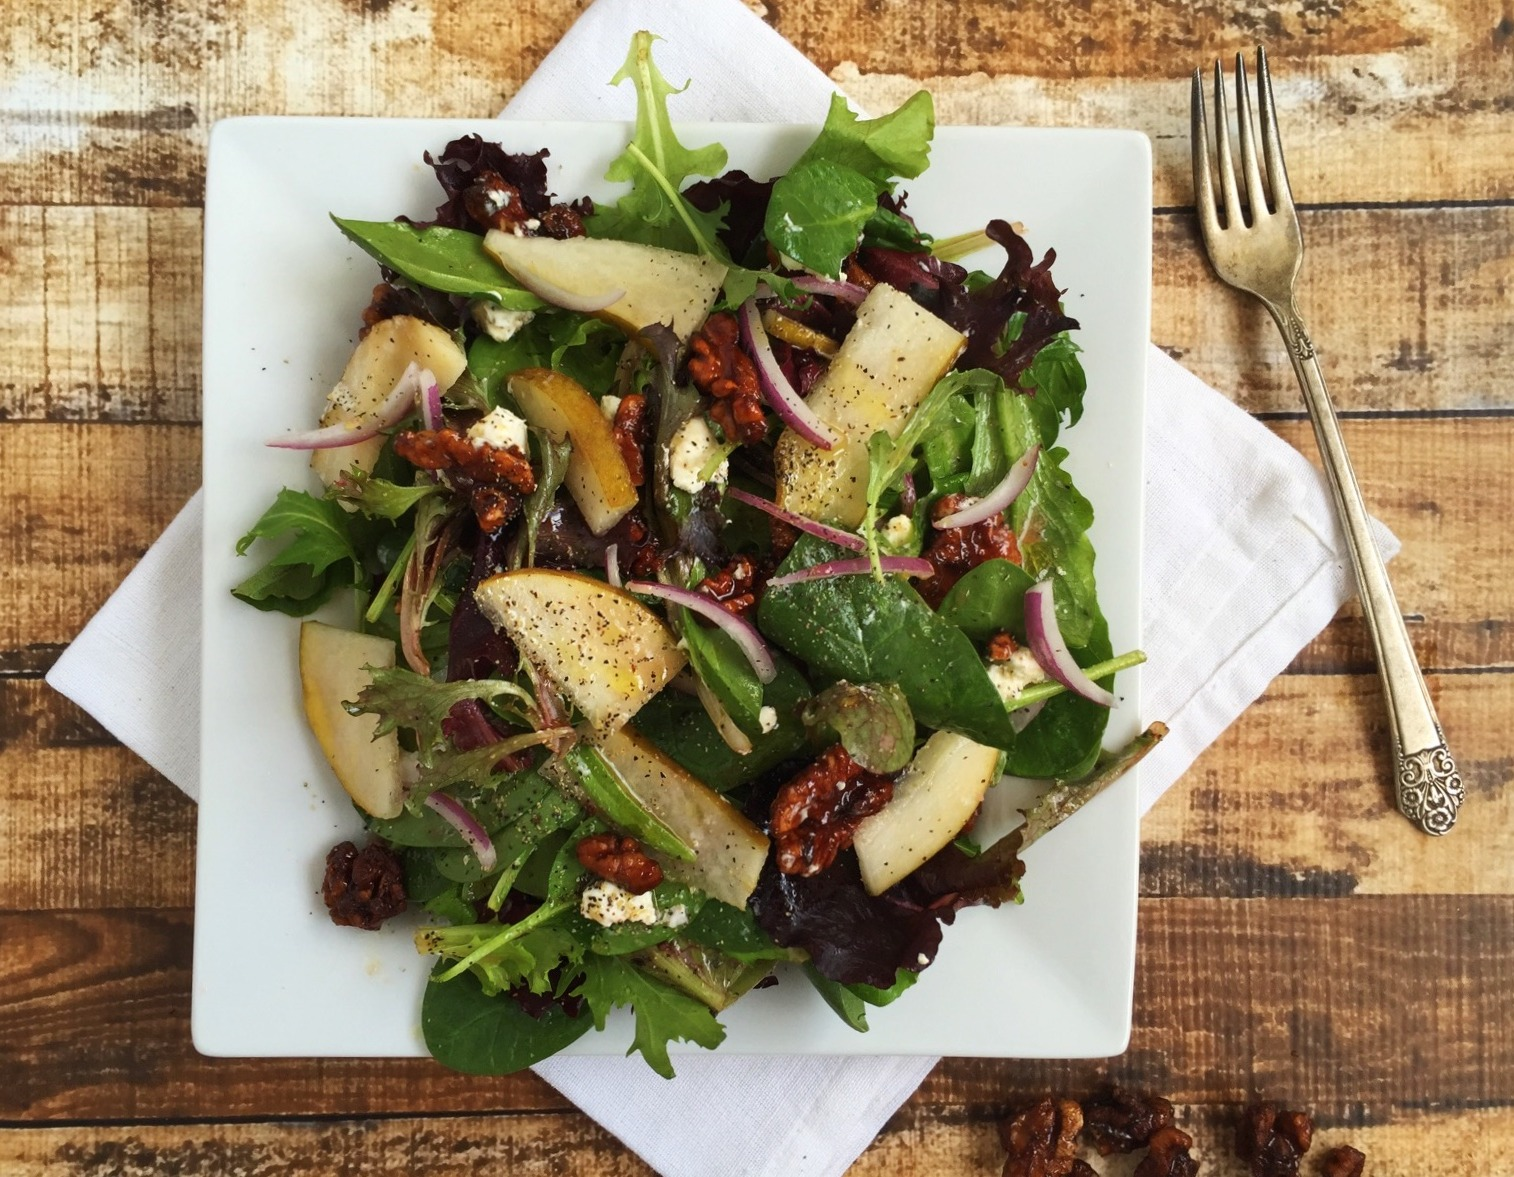 Mixed Greens with Pear, Goat Cheese, and Walnuts